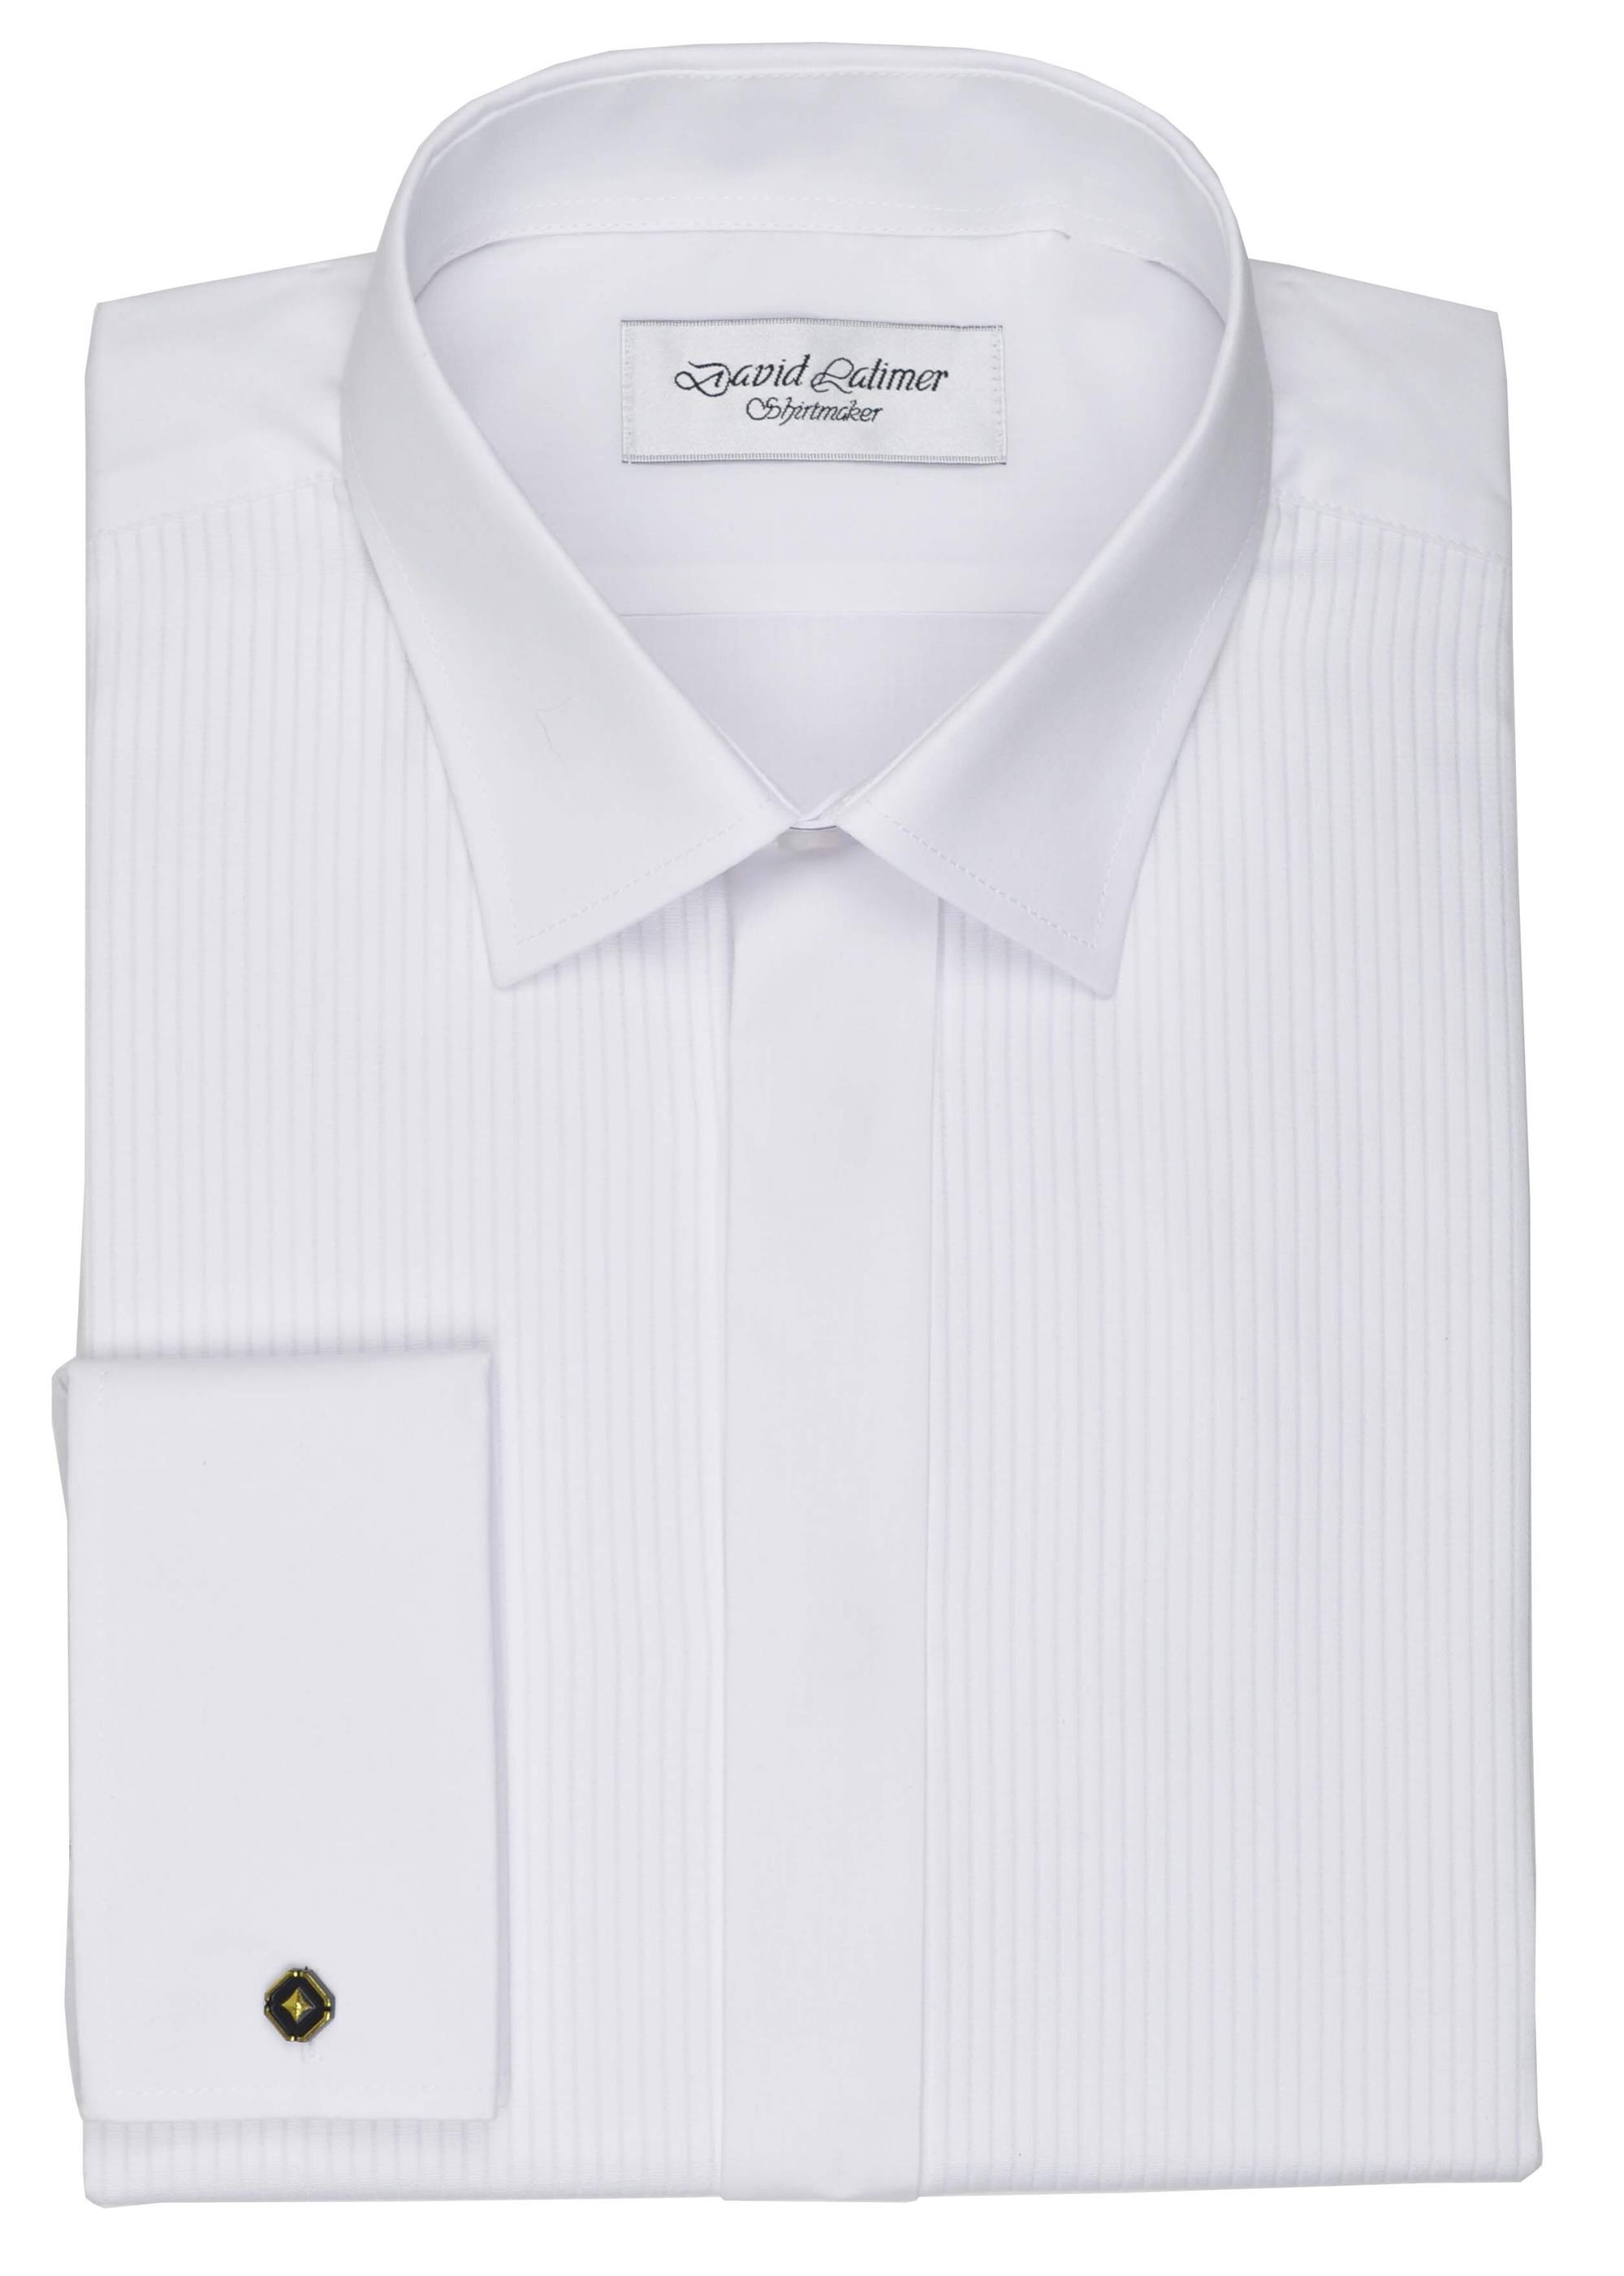 standard collar evening dress shirt